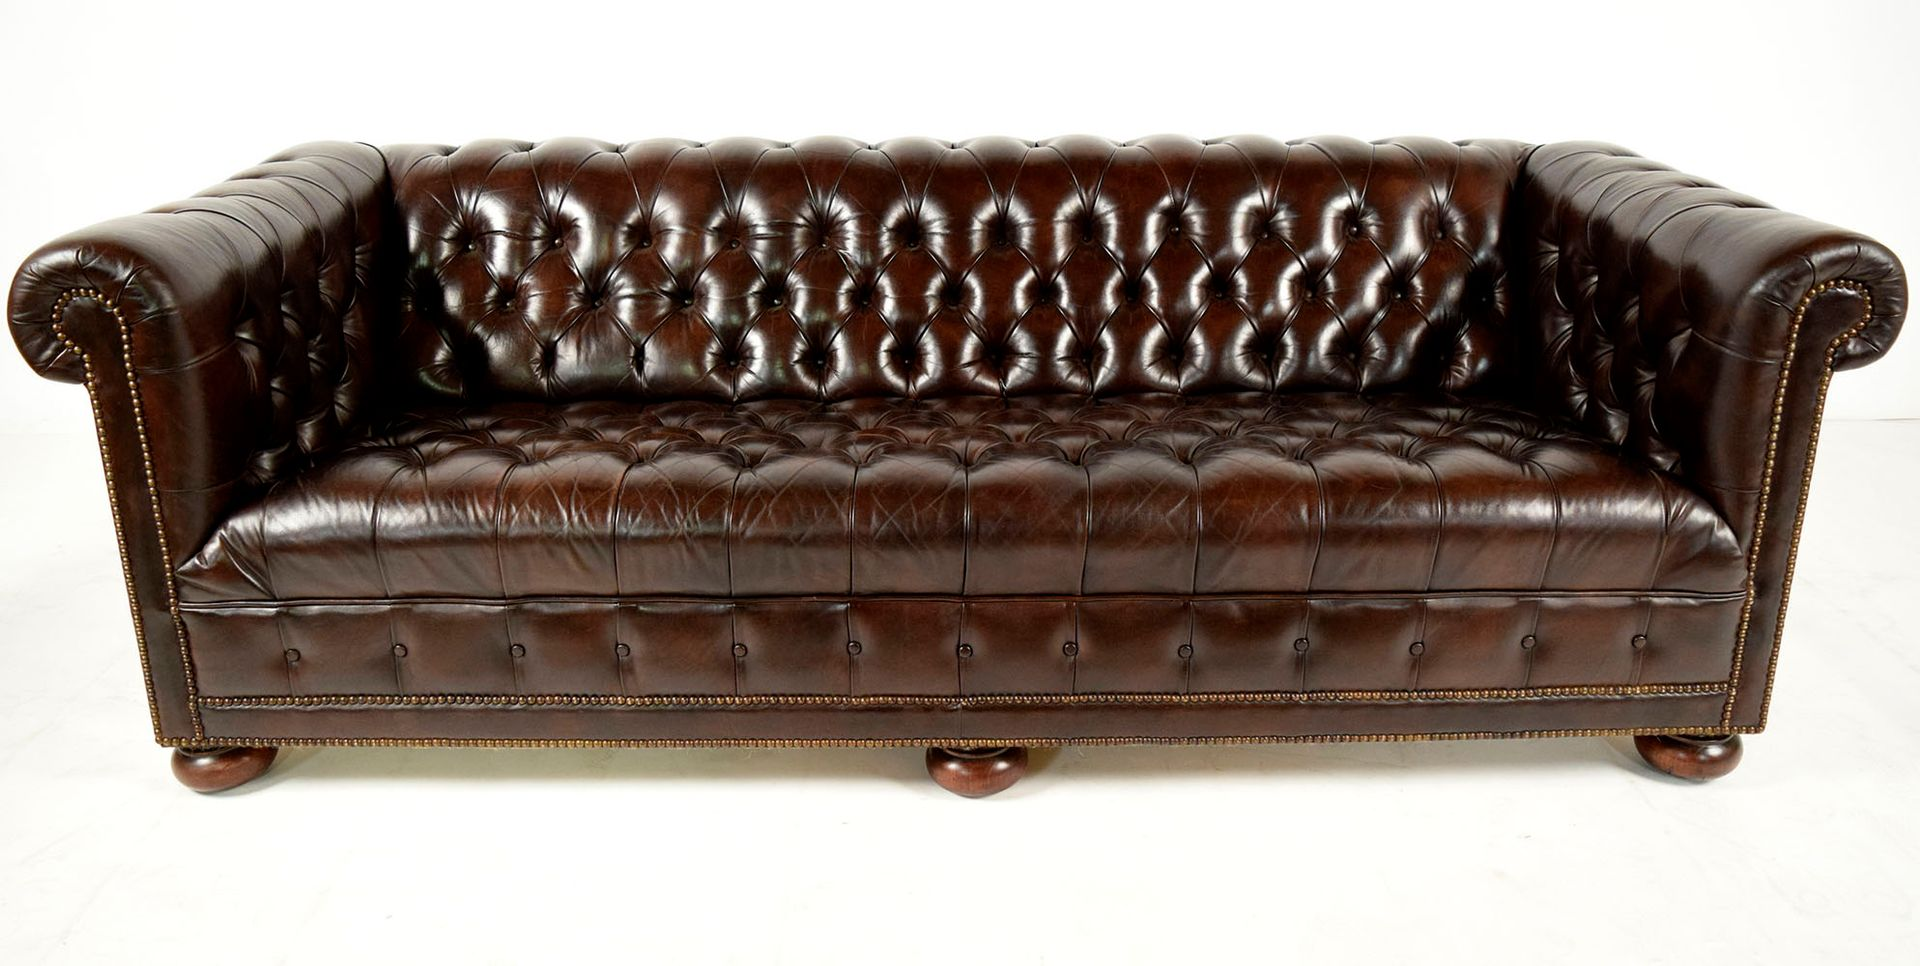 Vintage Chesterfield Brown Leather Sofa With Round Feet 1960s For Sale At Pamono